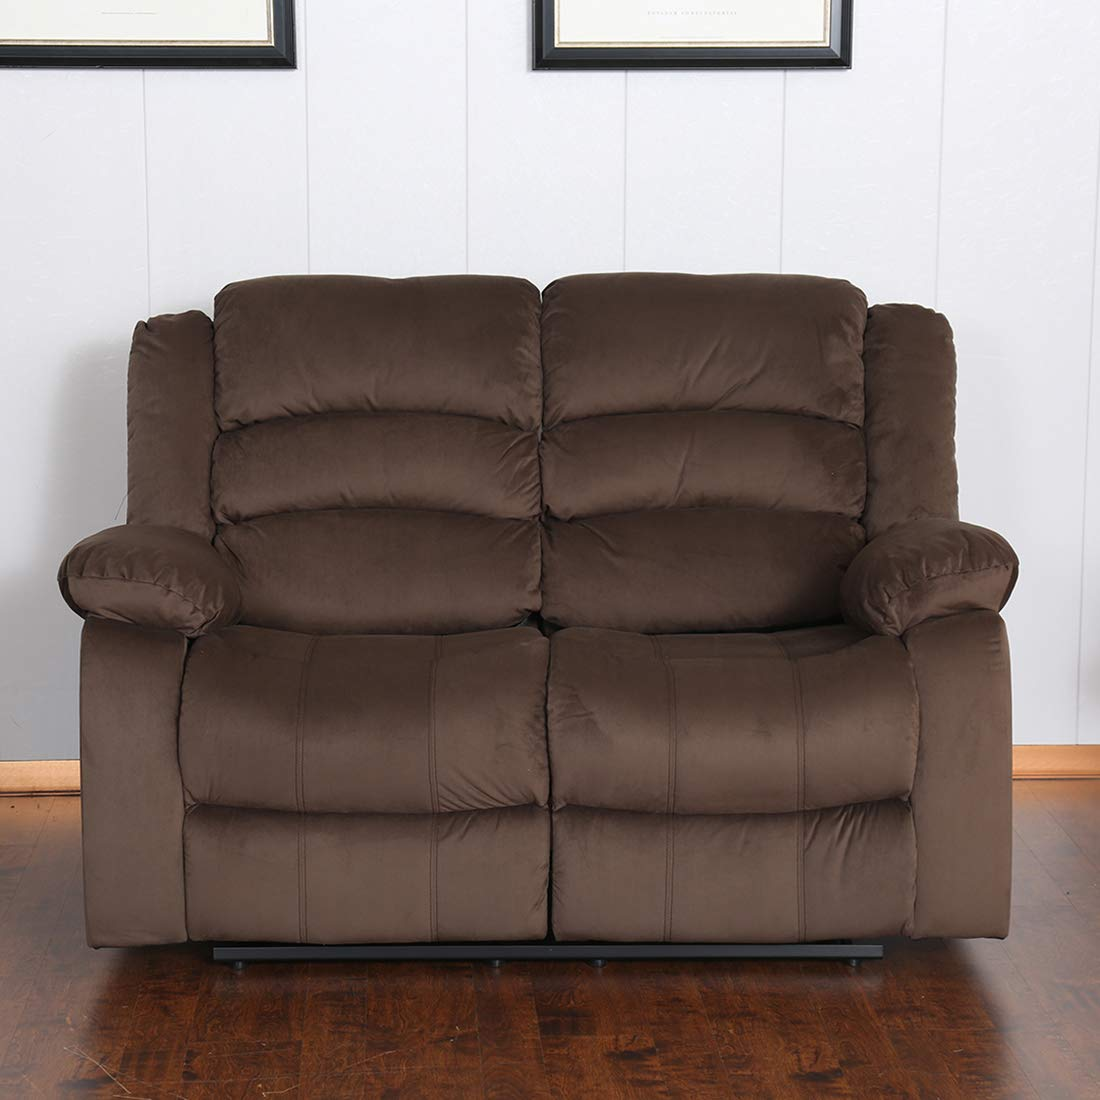 Royaloak Parker Two Seater Recliner (Brown)